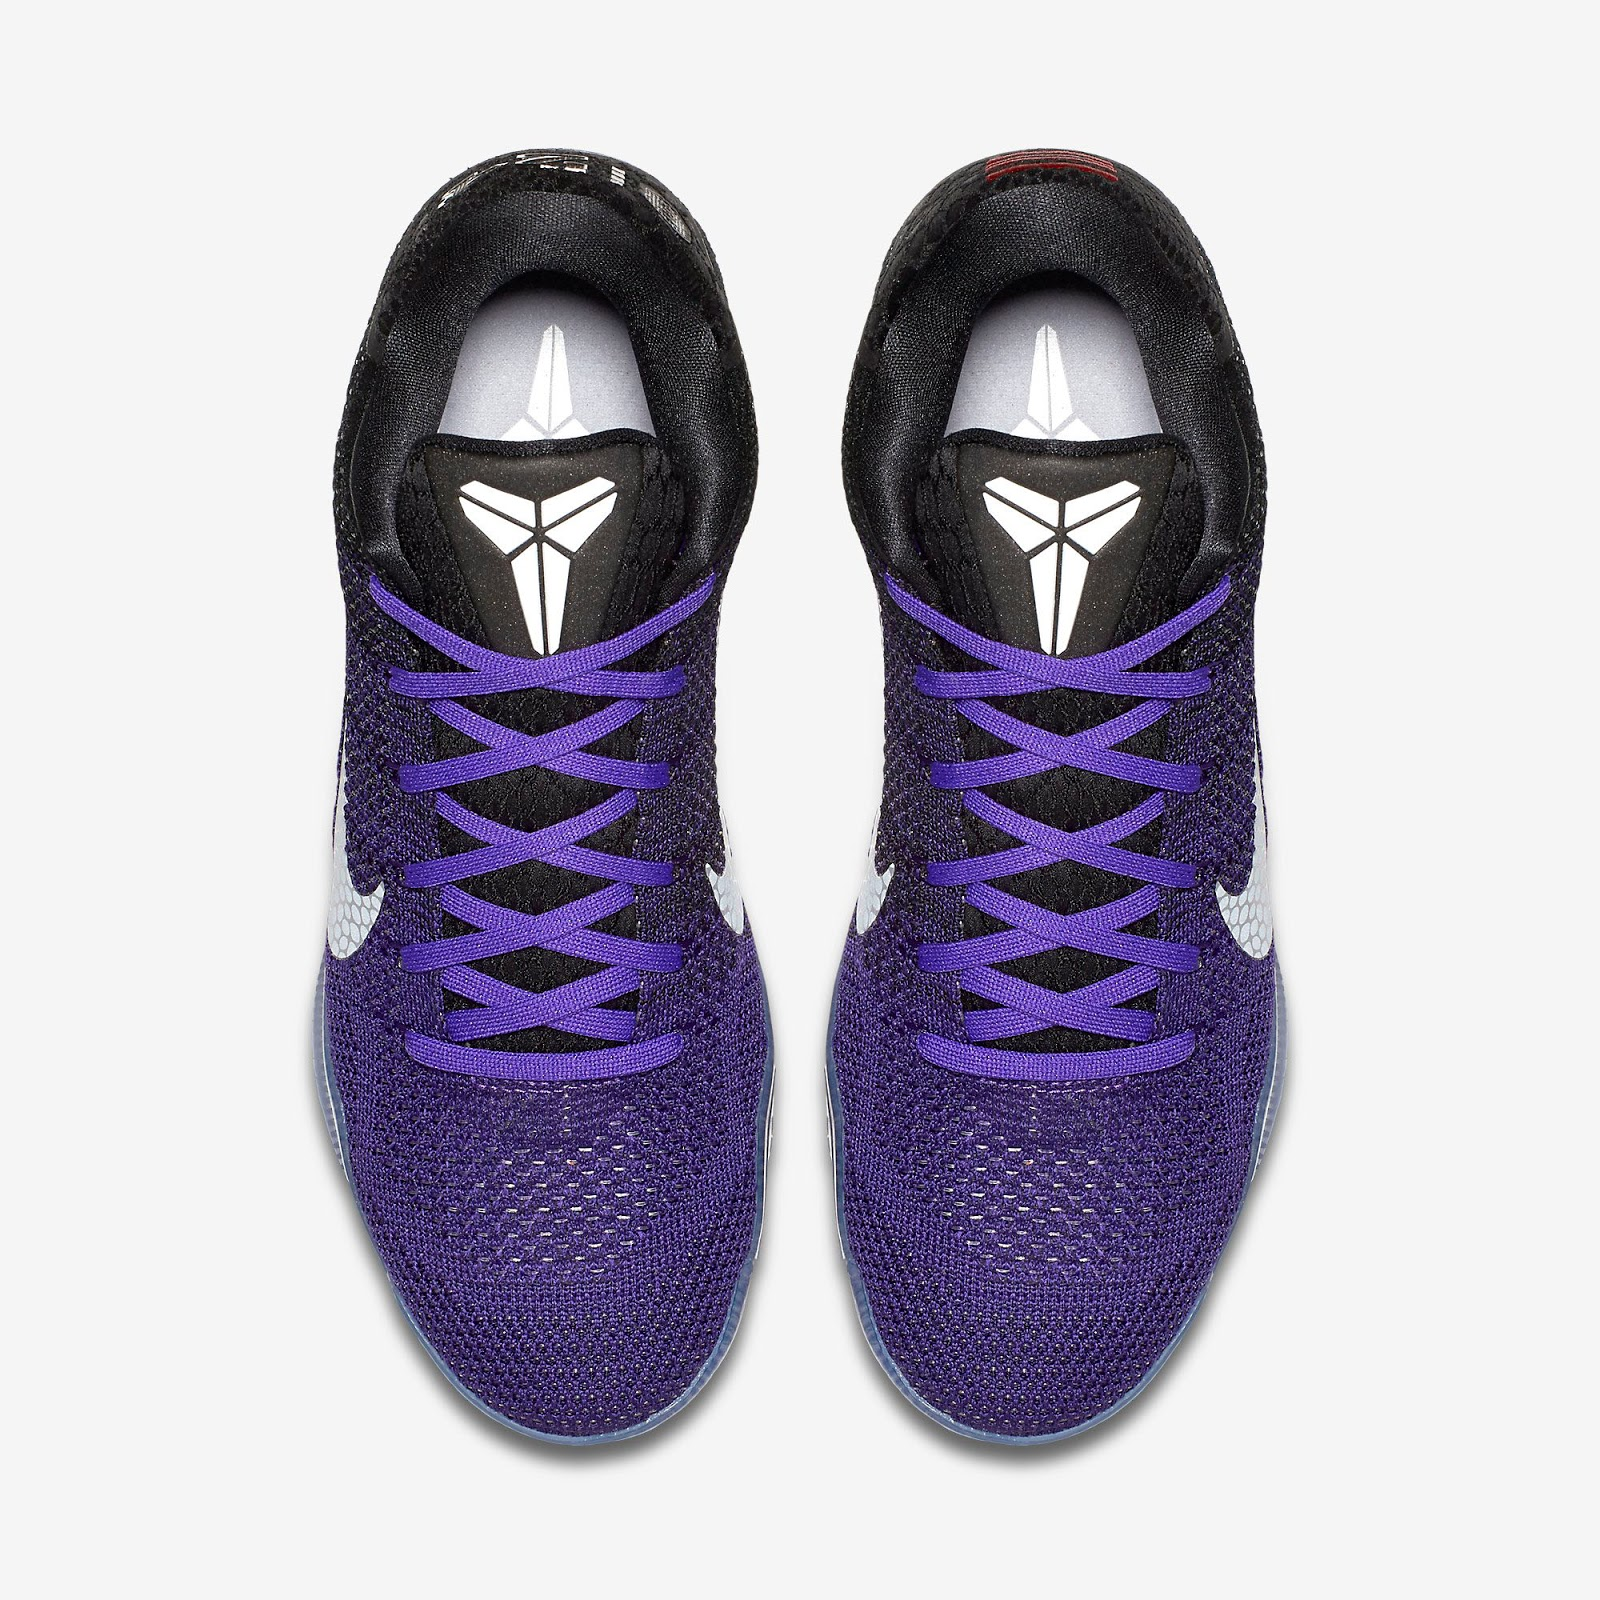 brand new 4a5c6 0d806 ajordanxi Your  1 Source For Sneaker Release Dates  Nike Kobe 11 Elite Low